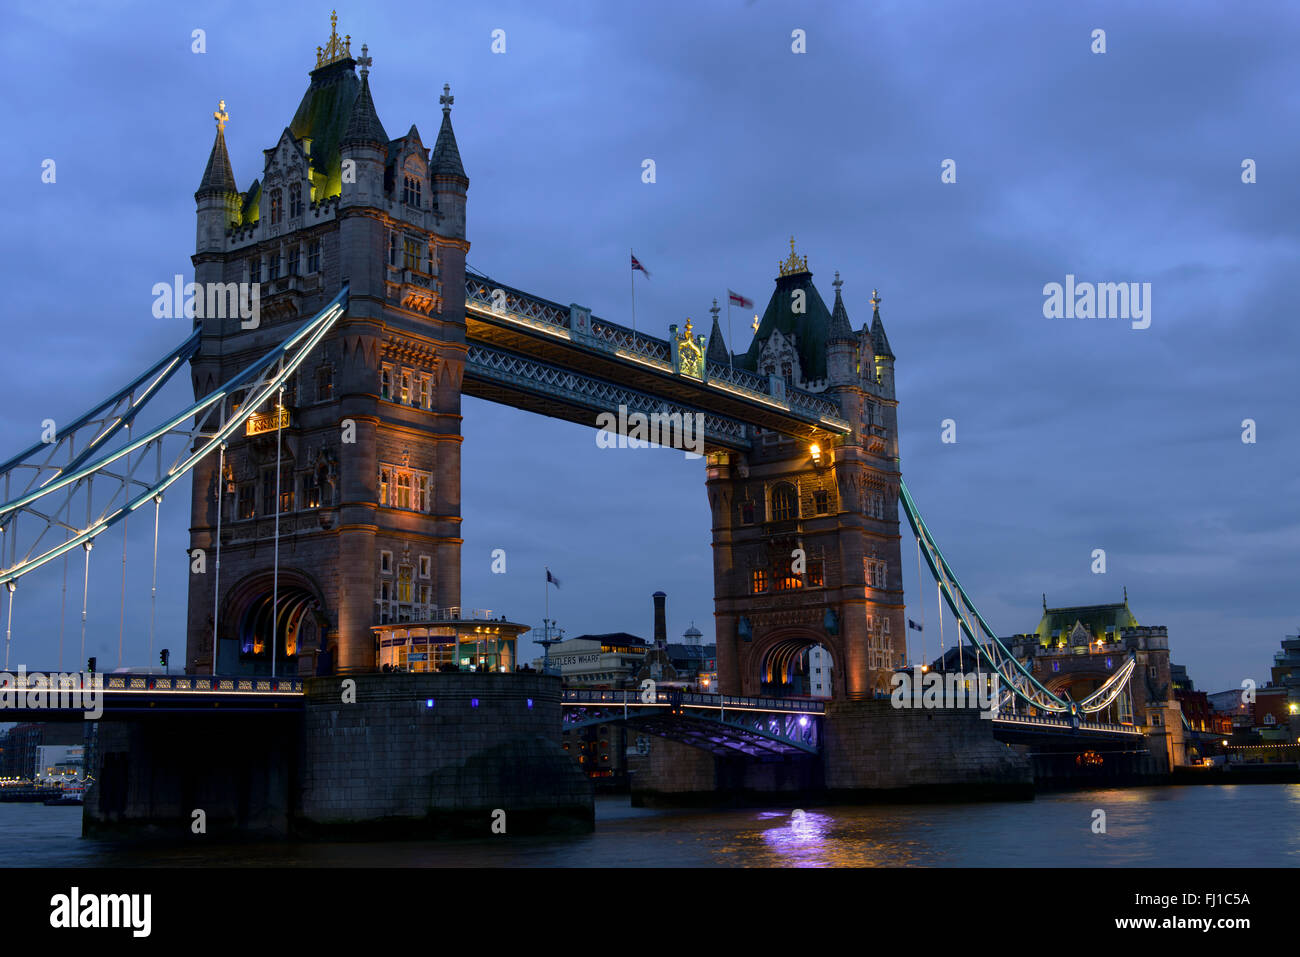 Tower of London, Tower Bridge at night - Stock Image